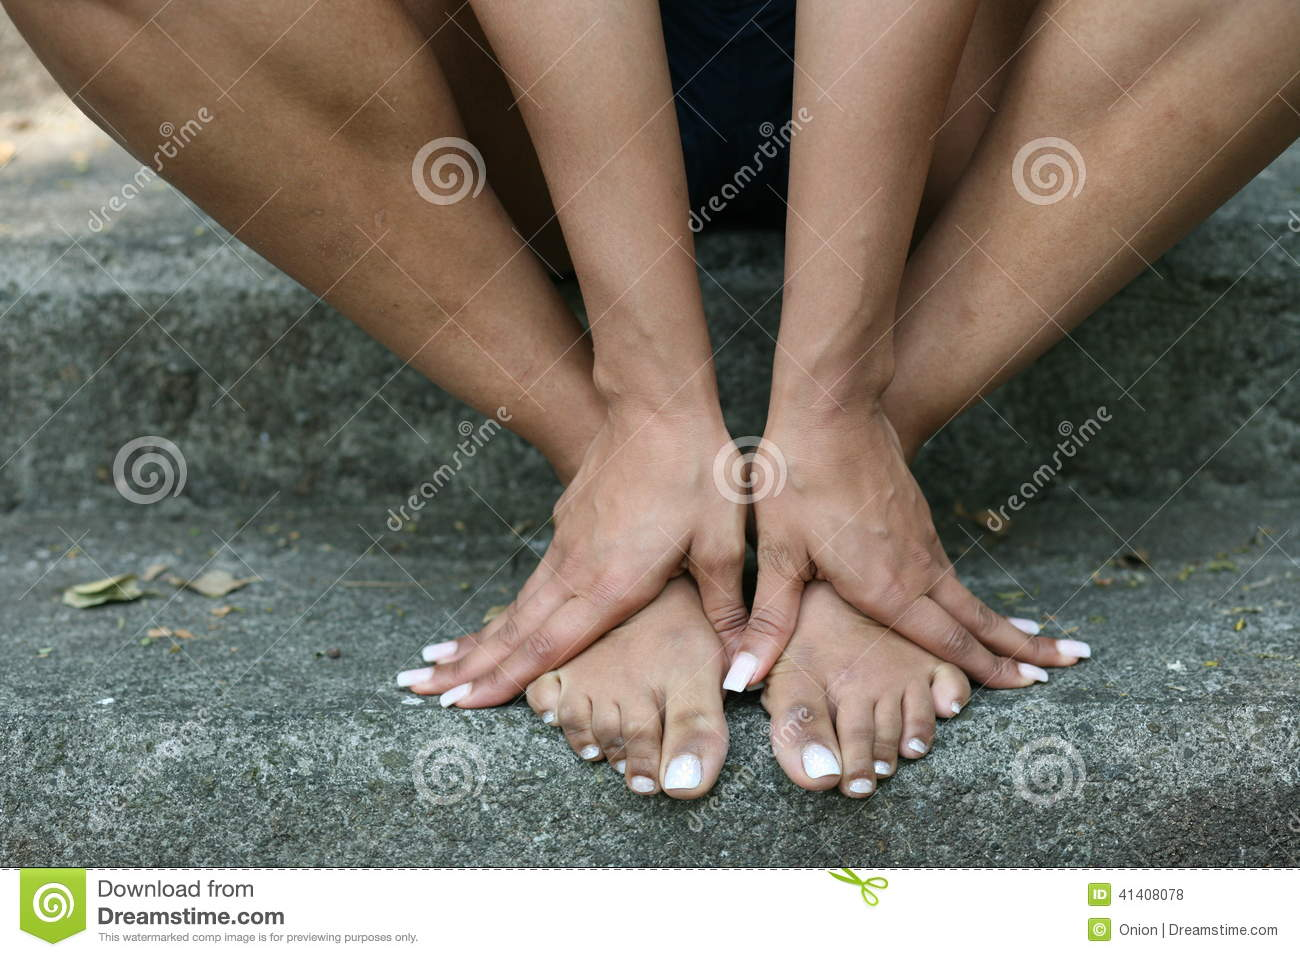 girl bare feet stock photo. image of care, flat, health - 41408078